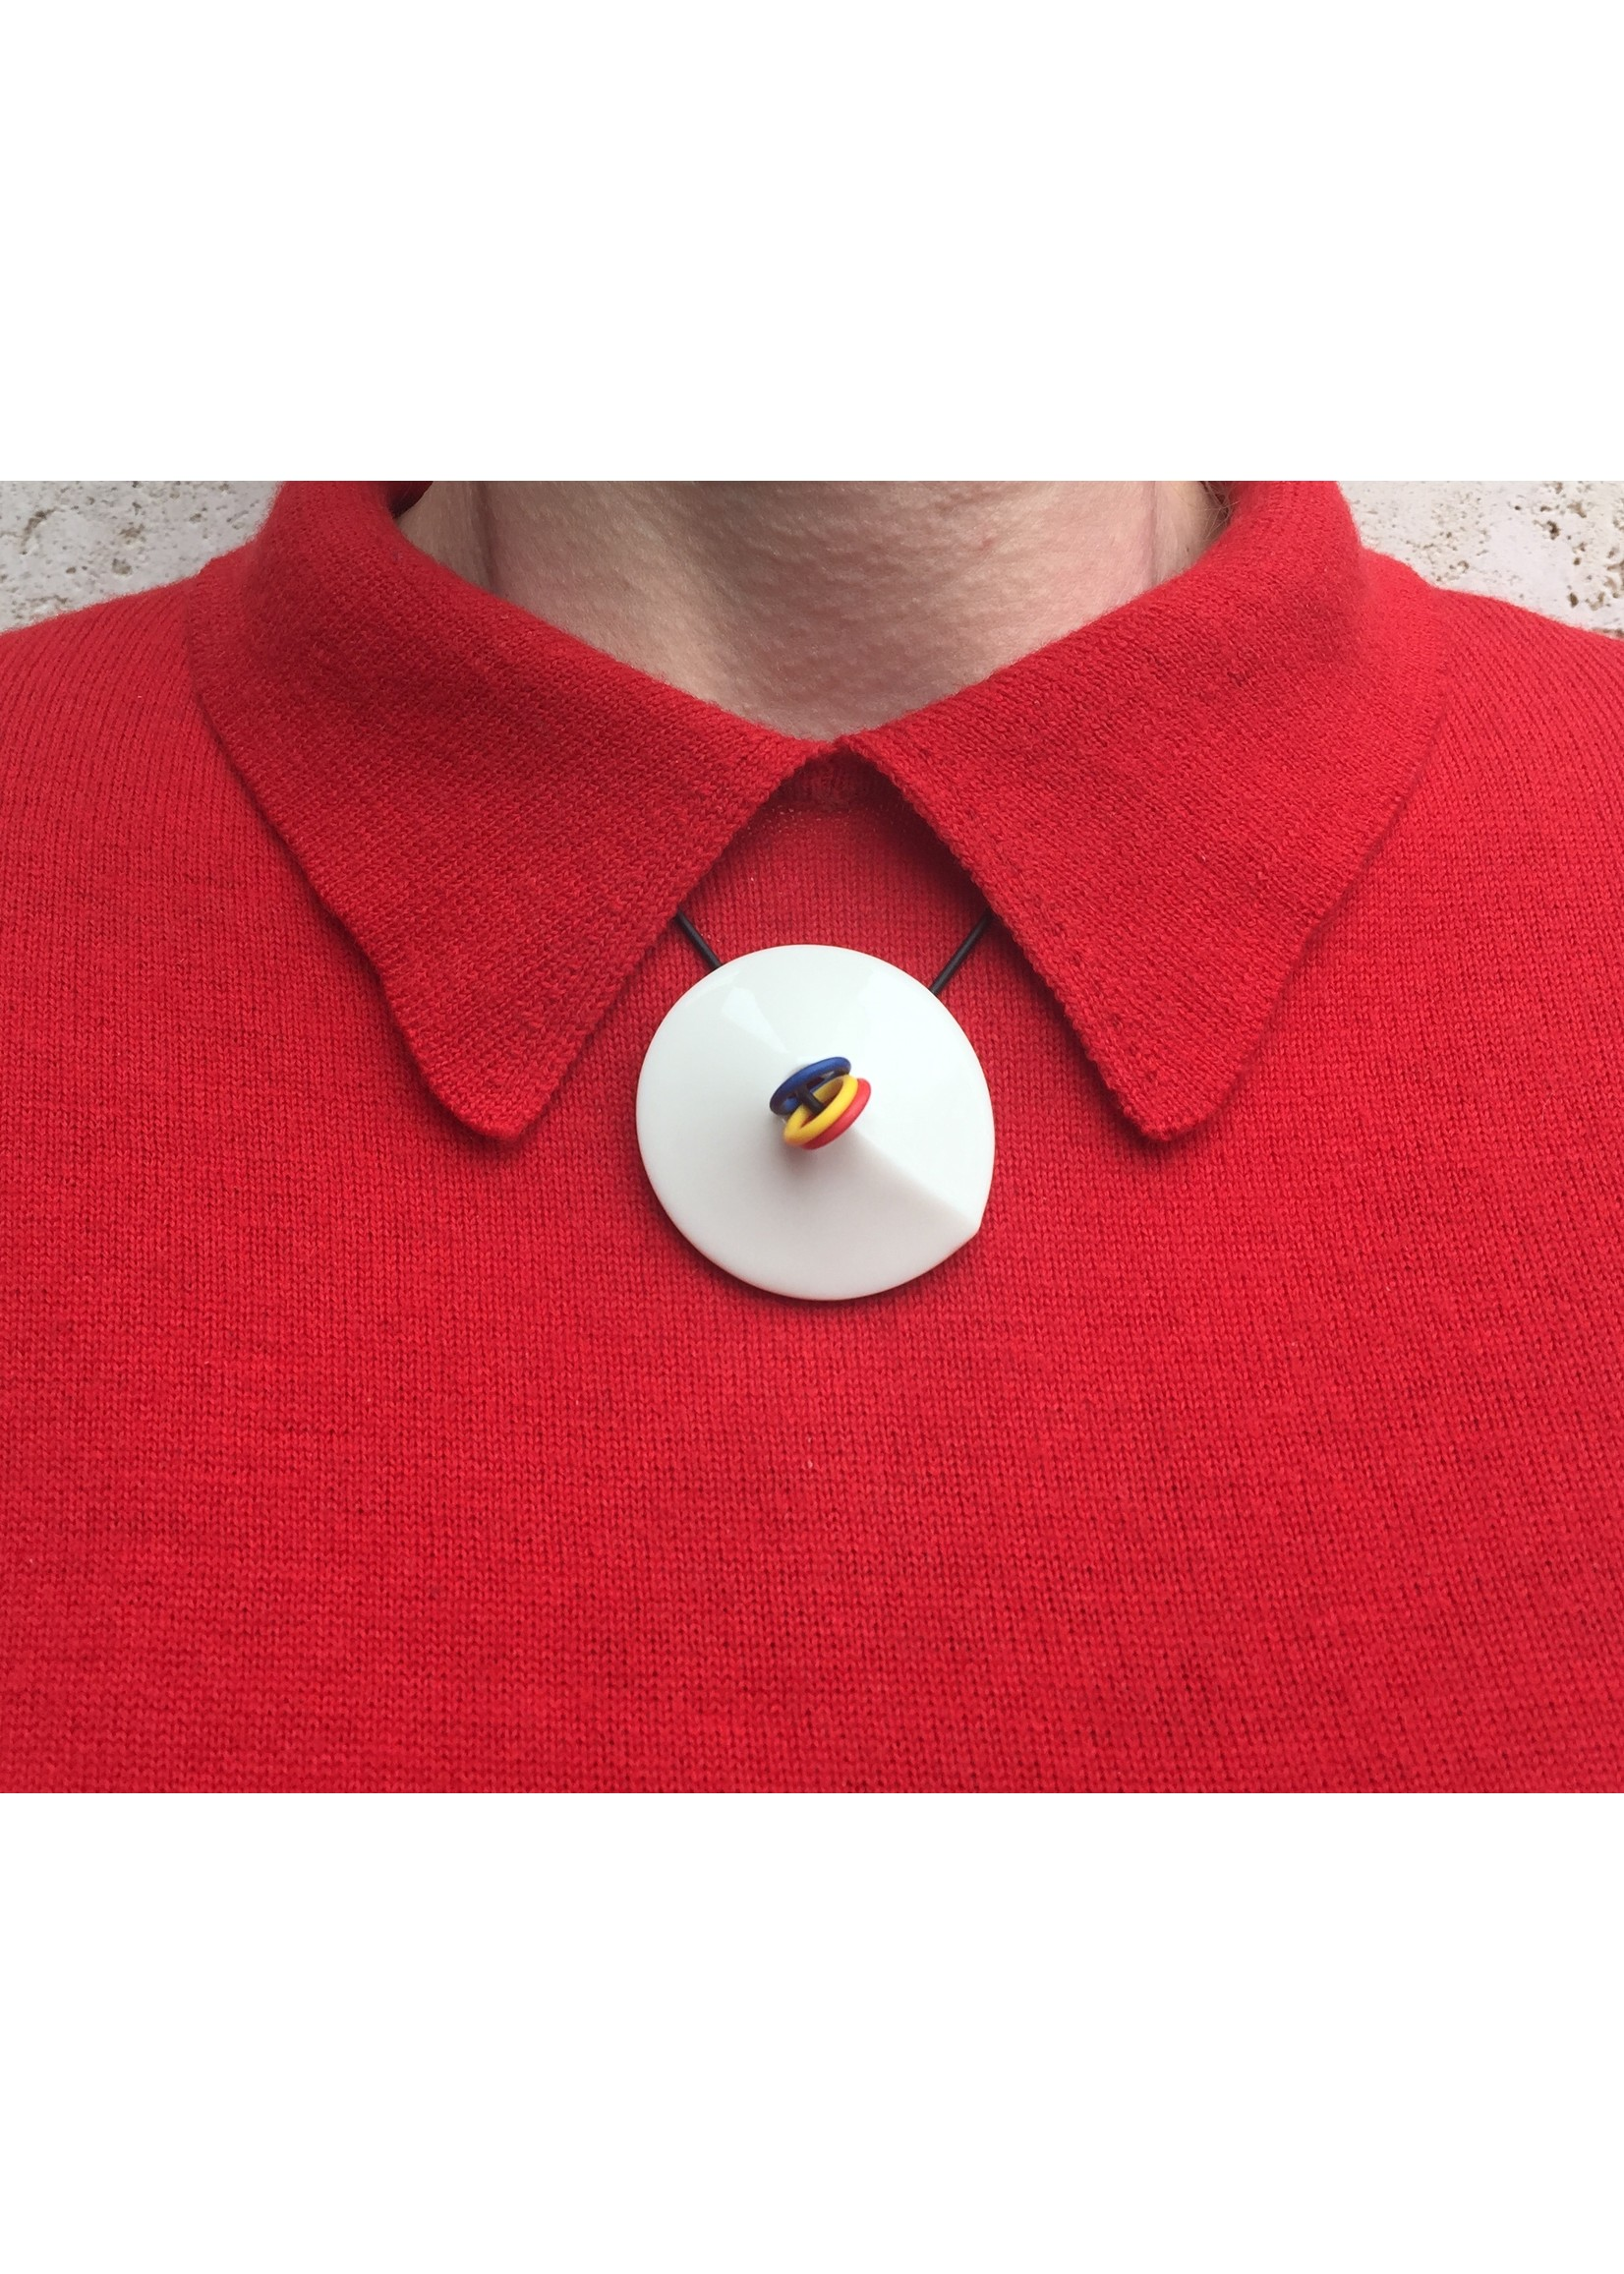 Ketting van Harry Agema  'Who's afraid for red, yellow and blue?'